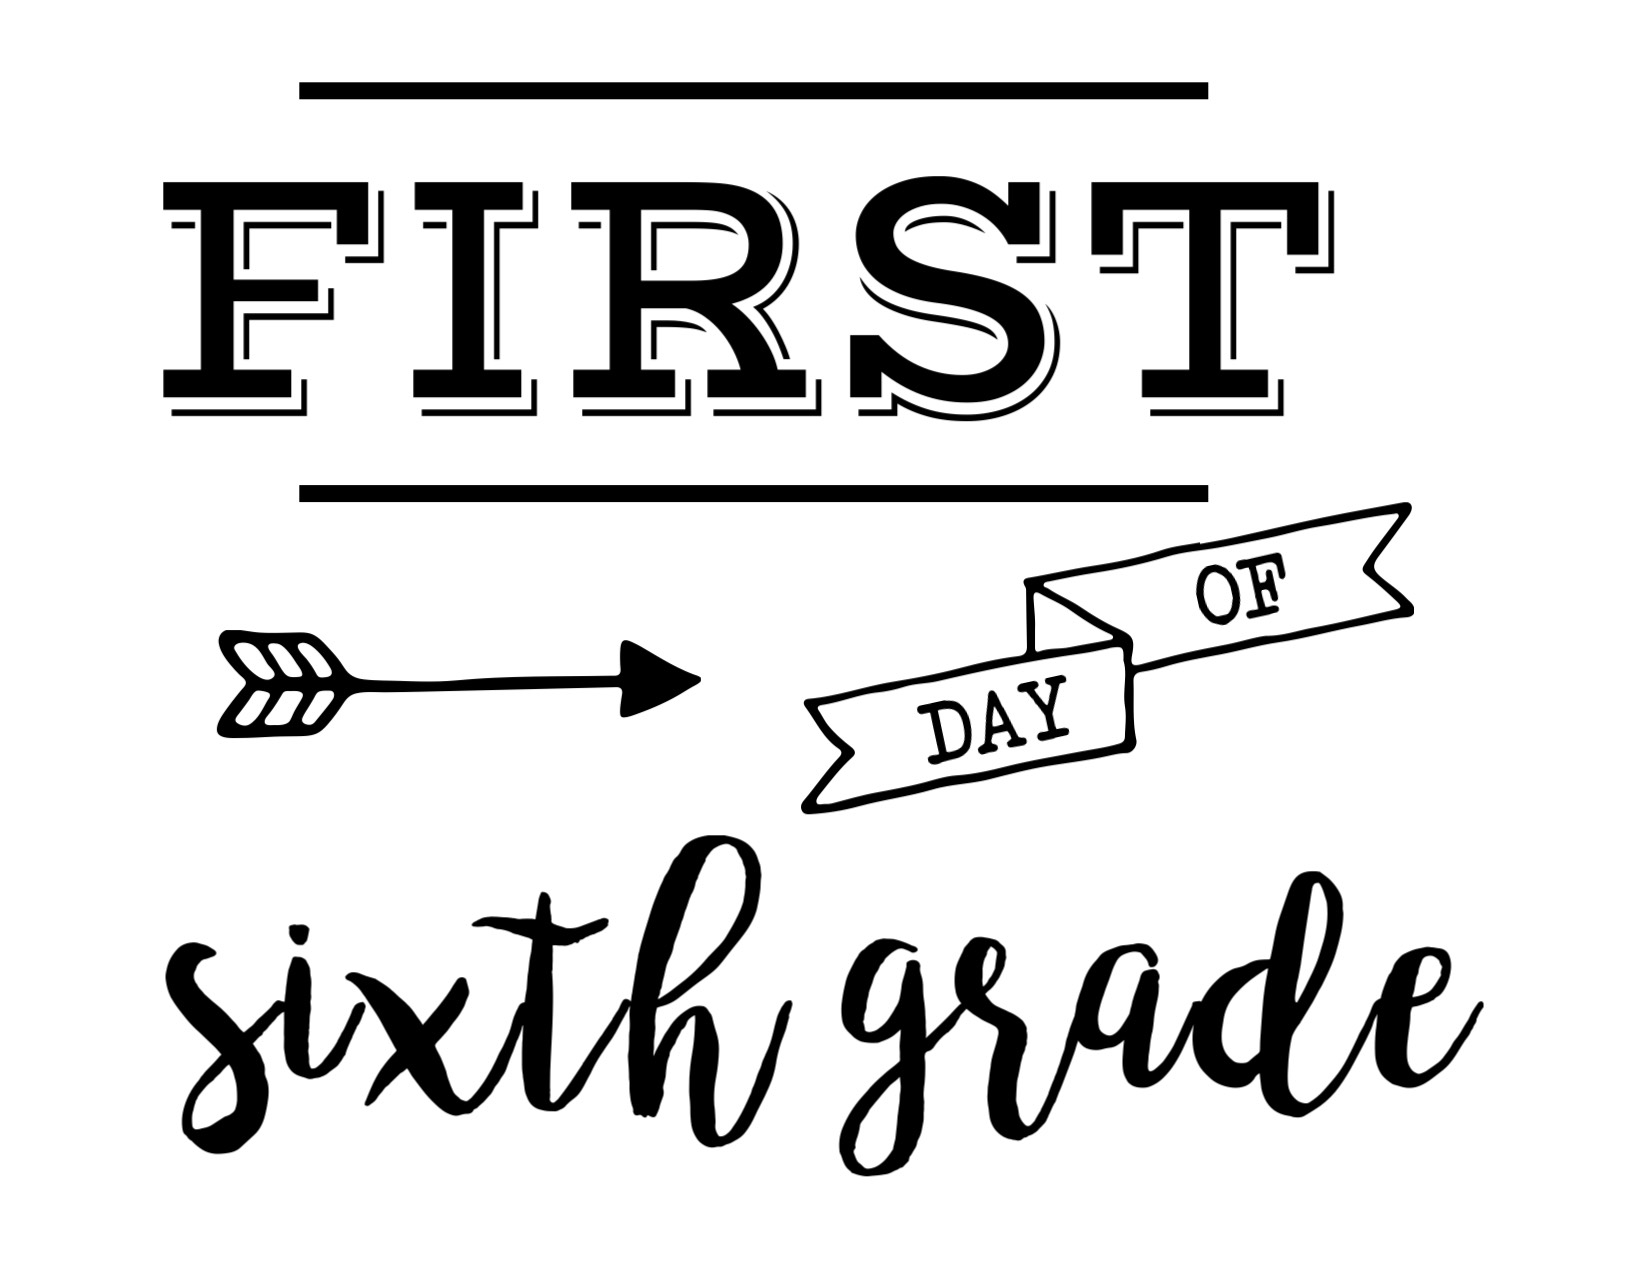 First-day-sixth-grade - Paper Trail Design